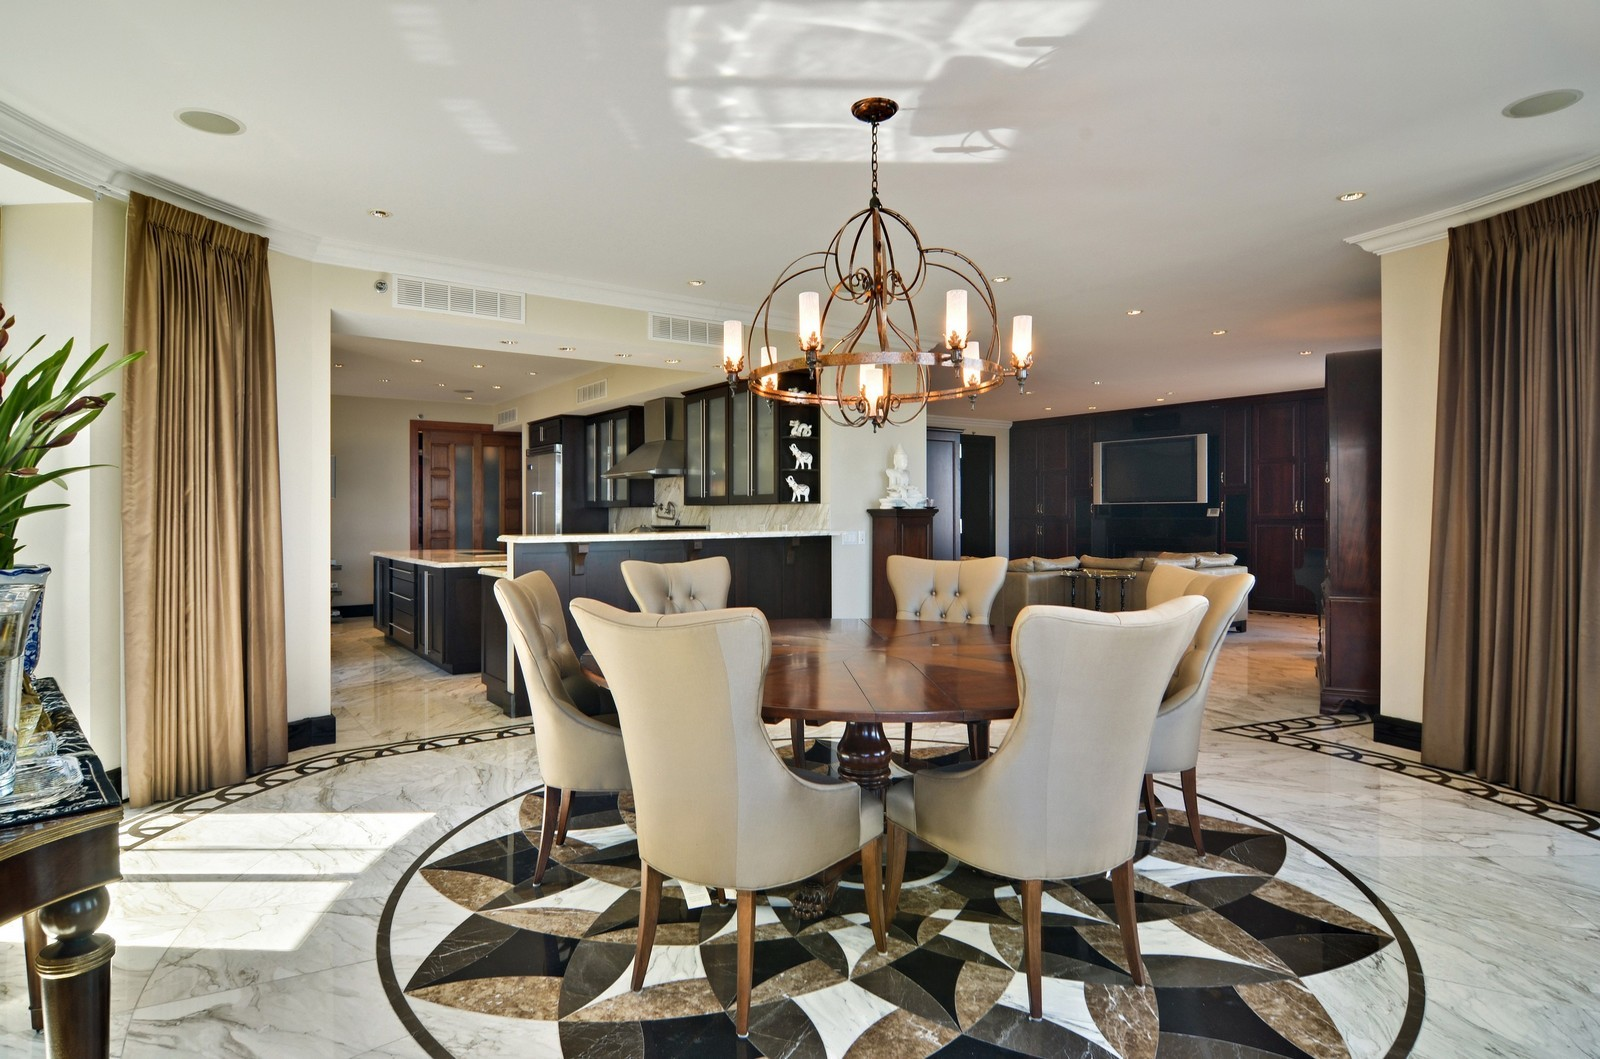 Real Estate Photography - 840 N Lake Shore Dr, Unit 201, Chicago, IL, 60611 - Living Room / Dining Room